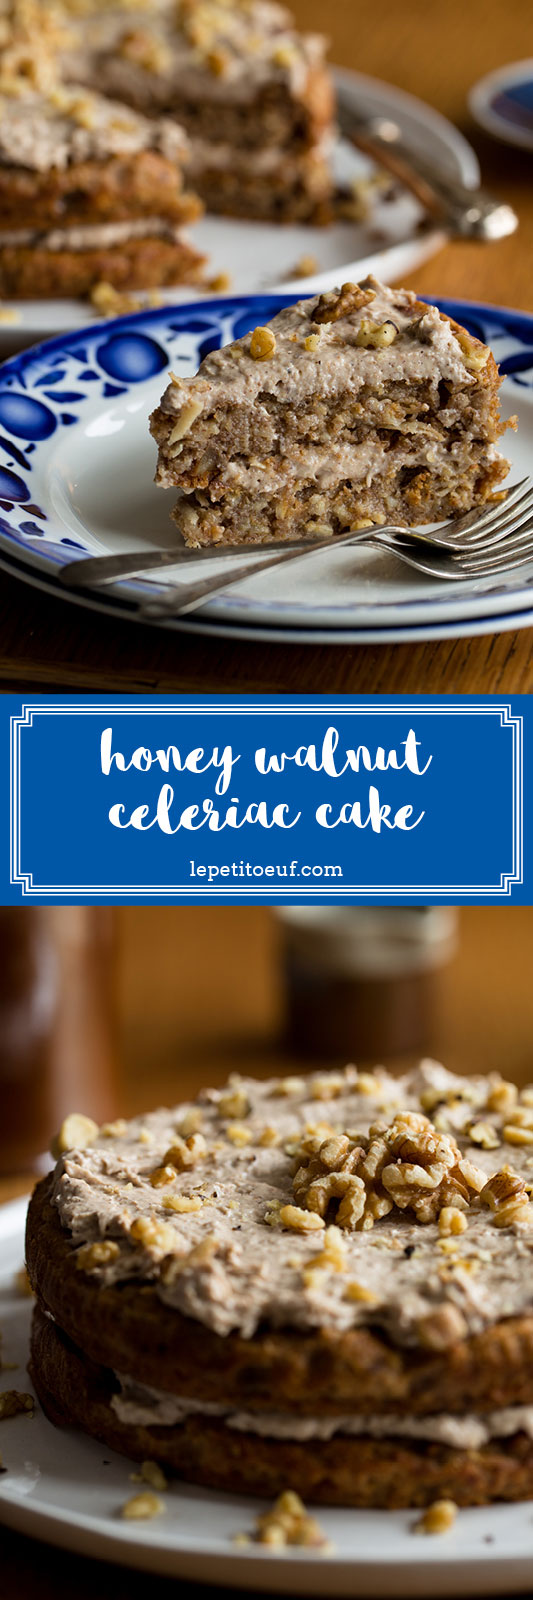 Honey and walnut celeriac cake made with spelt and rye flours, plus no refined sugars to create a healthy, hearty and wholesome cake with delightful overtones of celeriac and topped with a vegan frosting made from walnut butter! It's the healthiest, most filling cake you'll find this year!